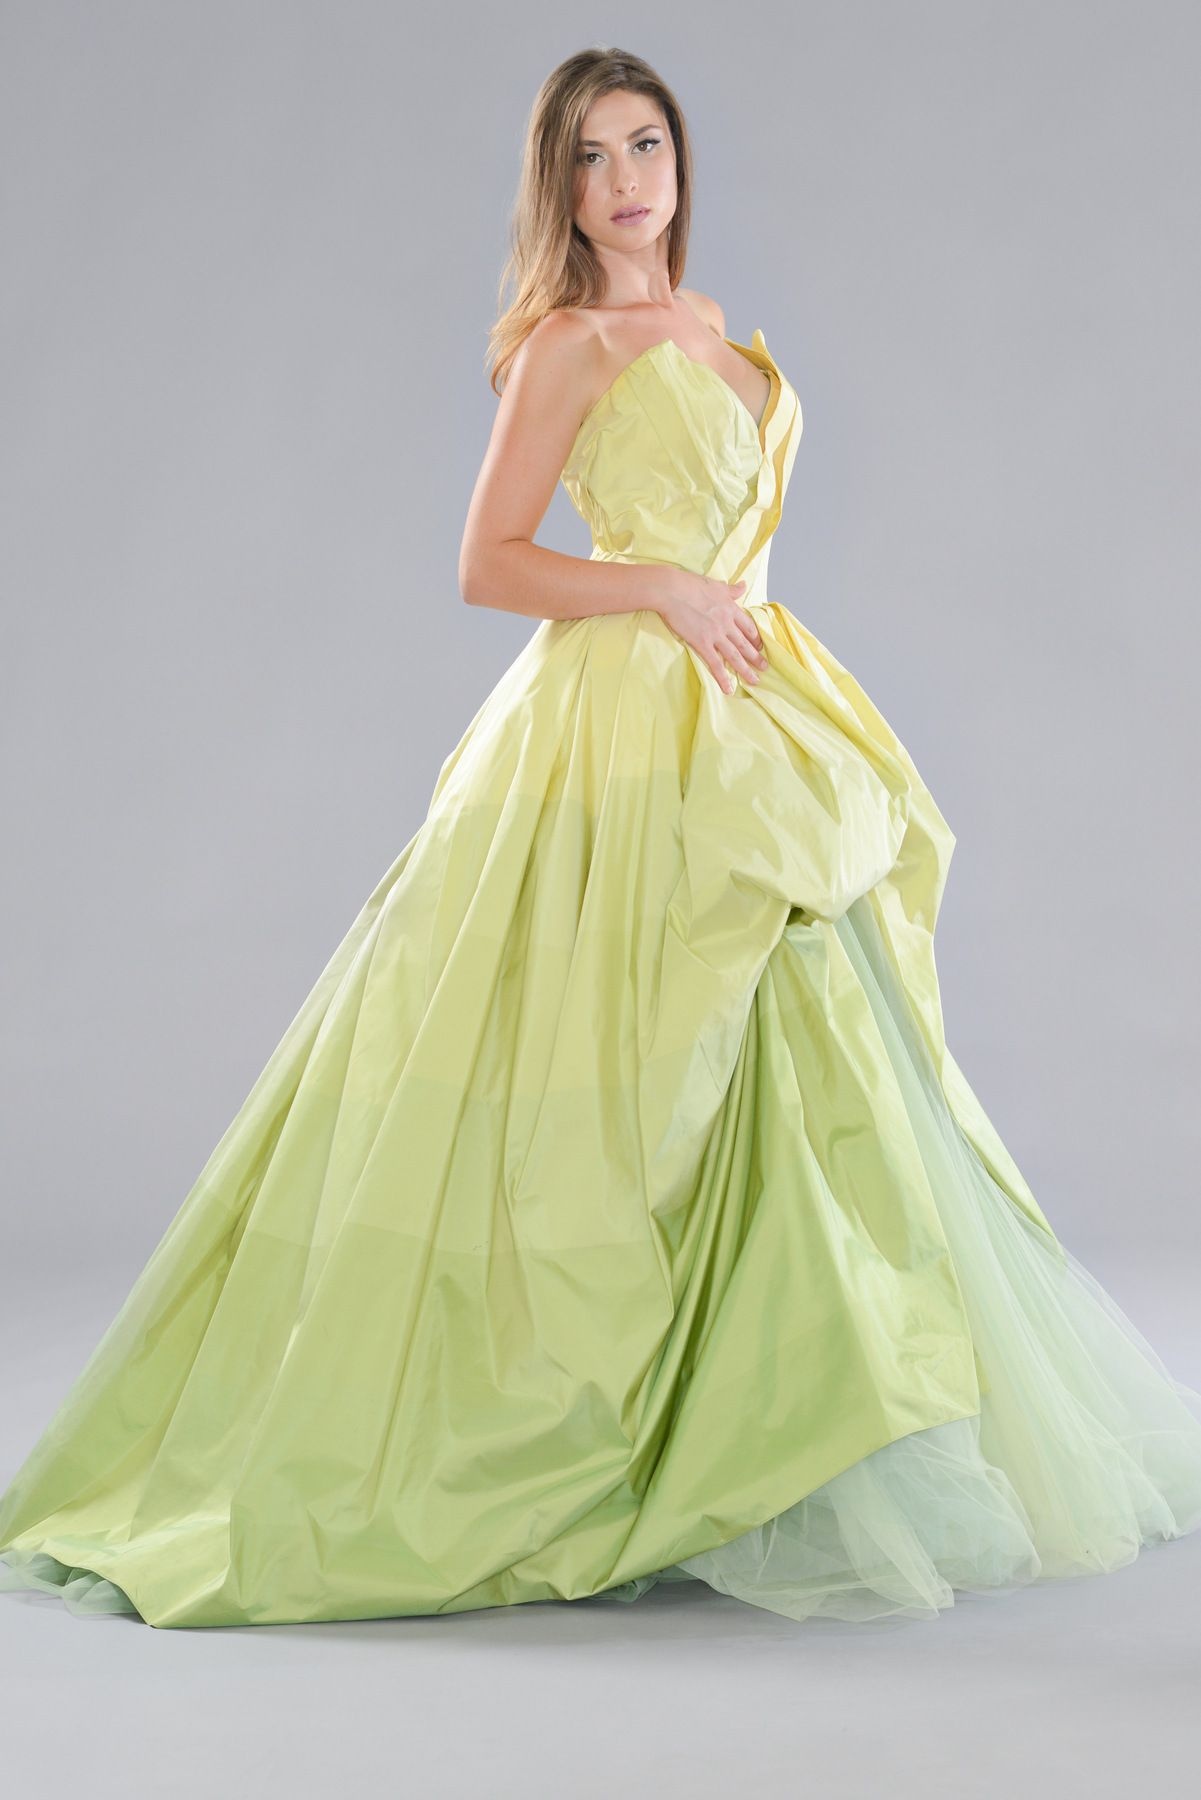 Portfoliobox dresses pinterest bespoke spring summer and shades of lime and chartreuse gown ombrellifo Choice Image